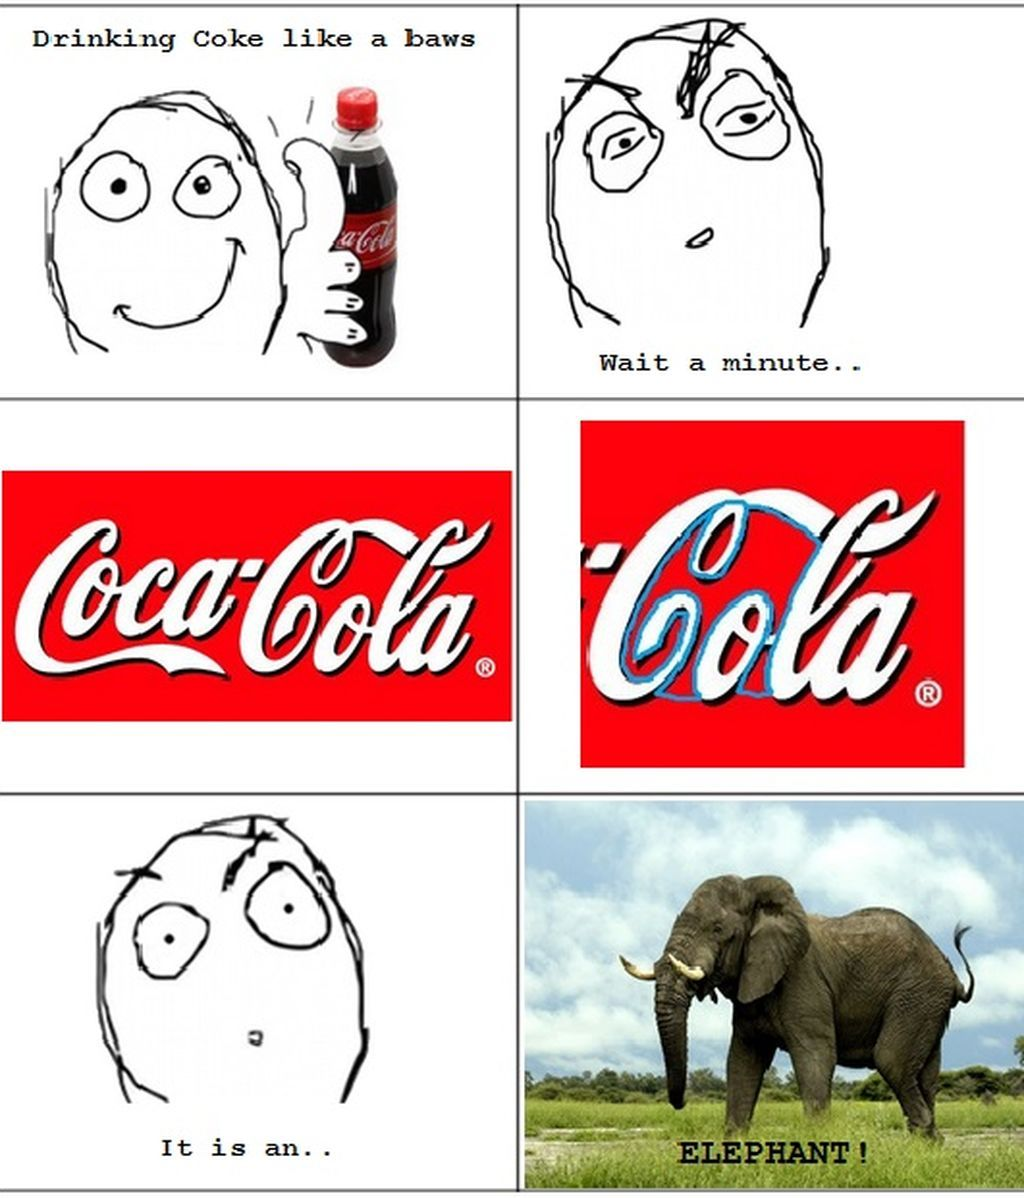 The Hidden Message In Coca-Cola Logo Is An Elephant